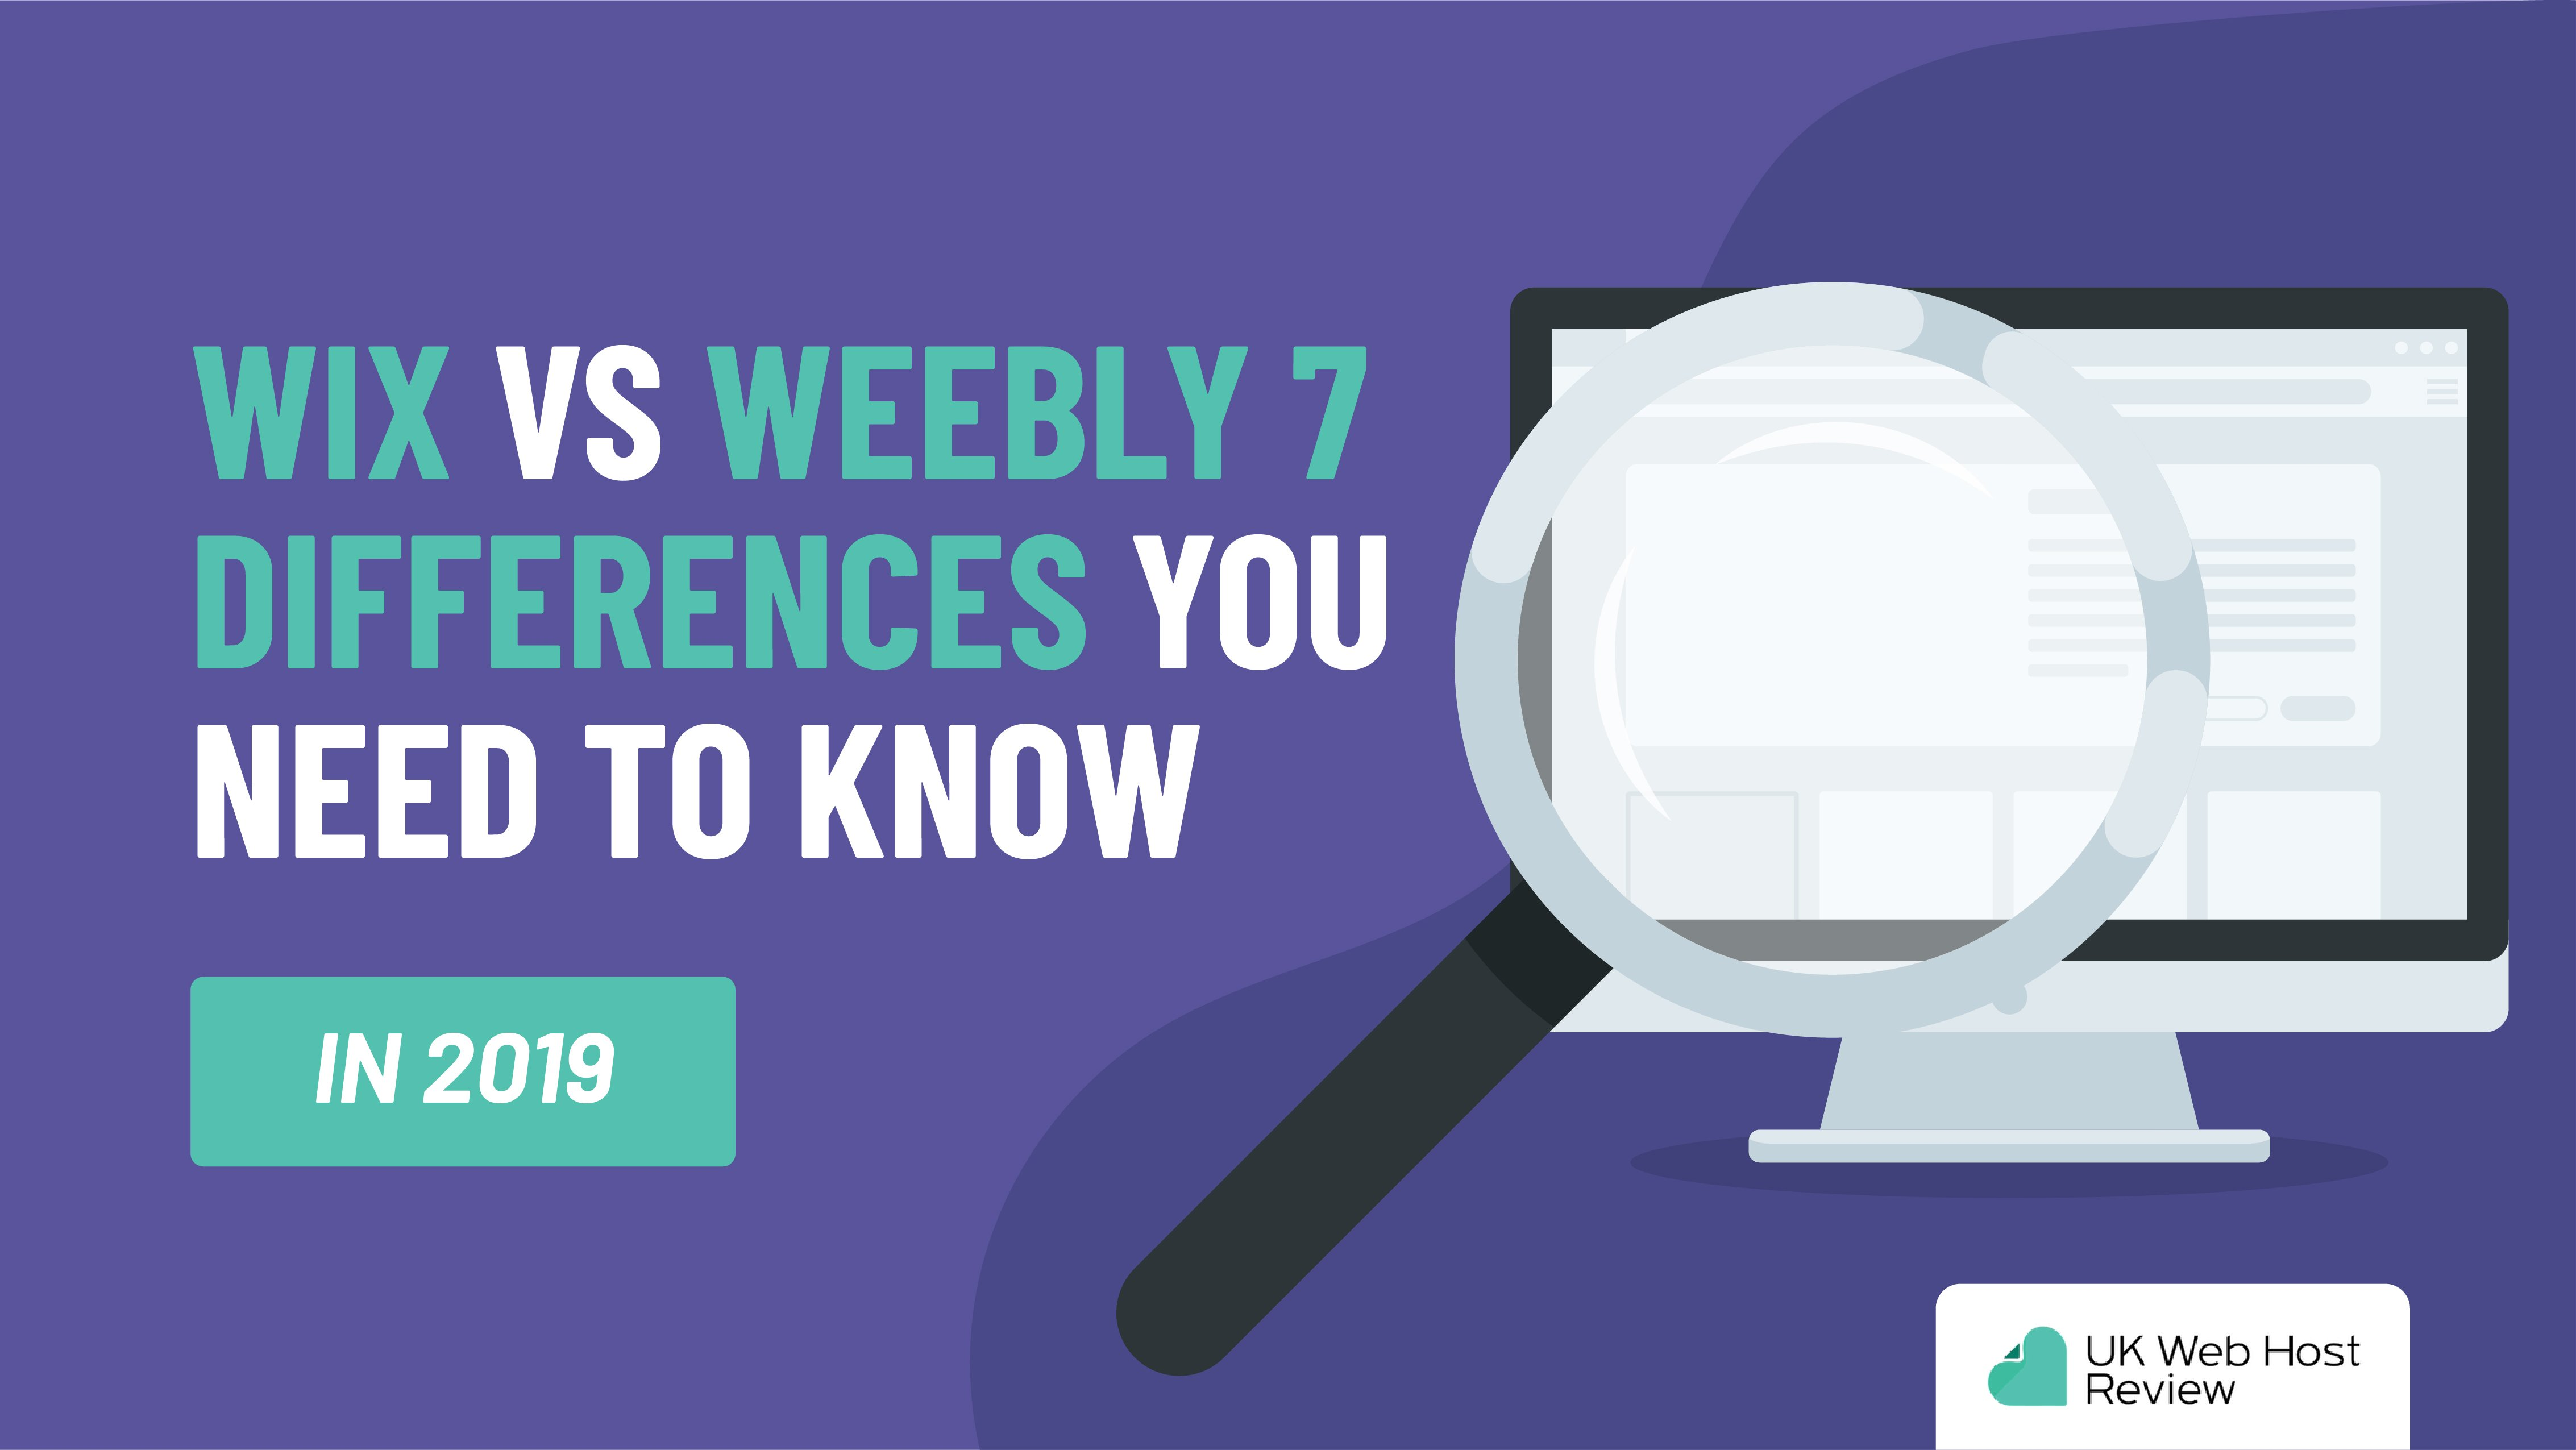 Wix Vs Weebly – 7 Differences You Need to Know in 2019